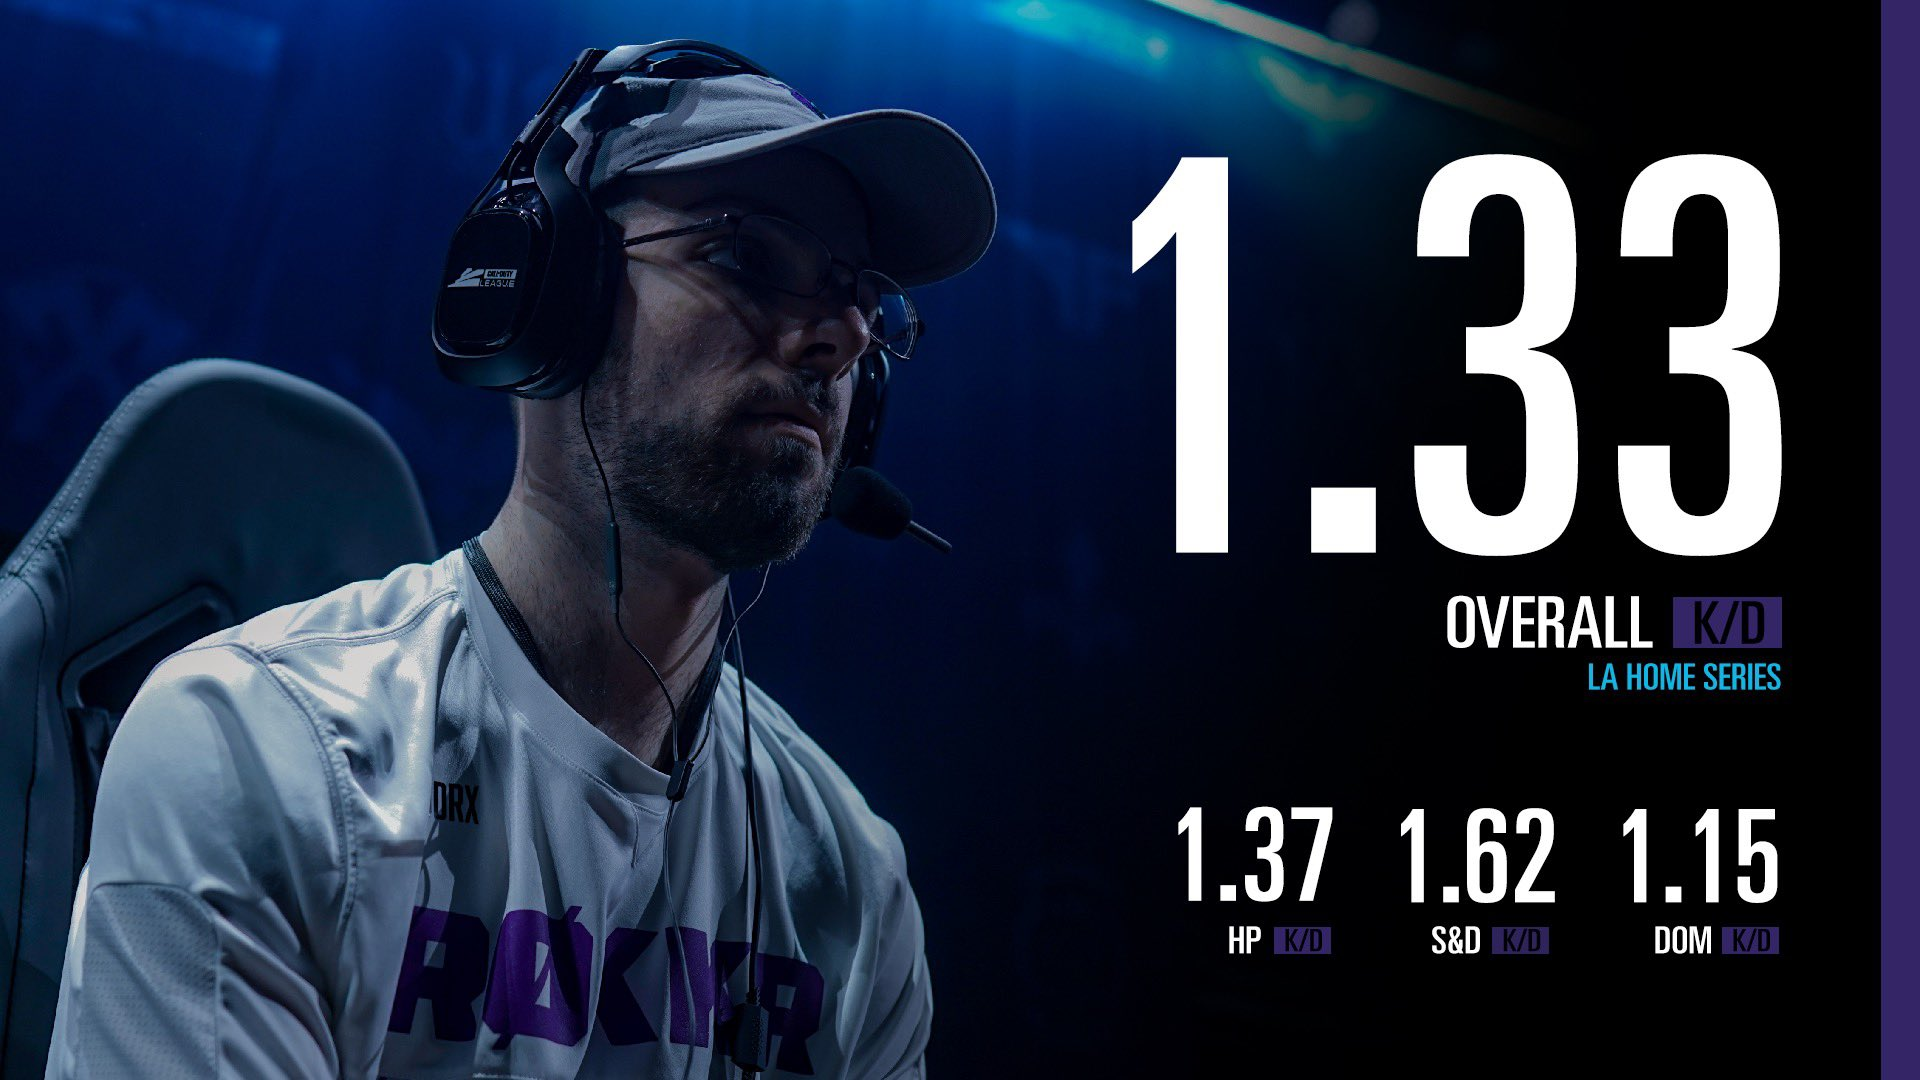 GodRx's stats from CDL Los Angeles.